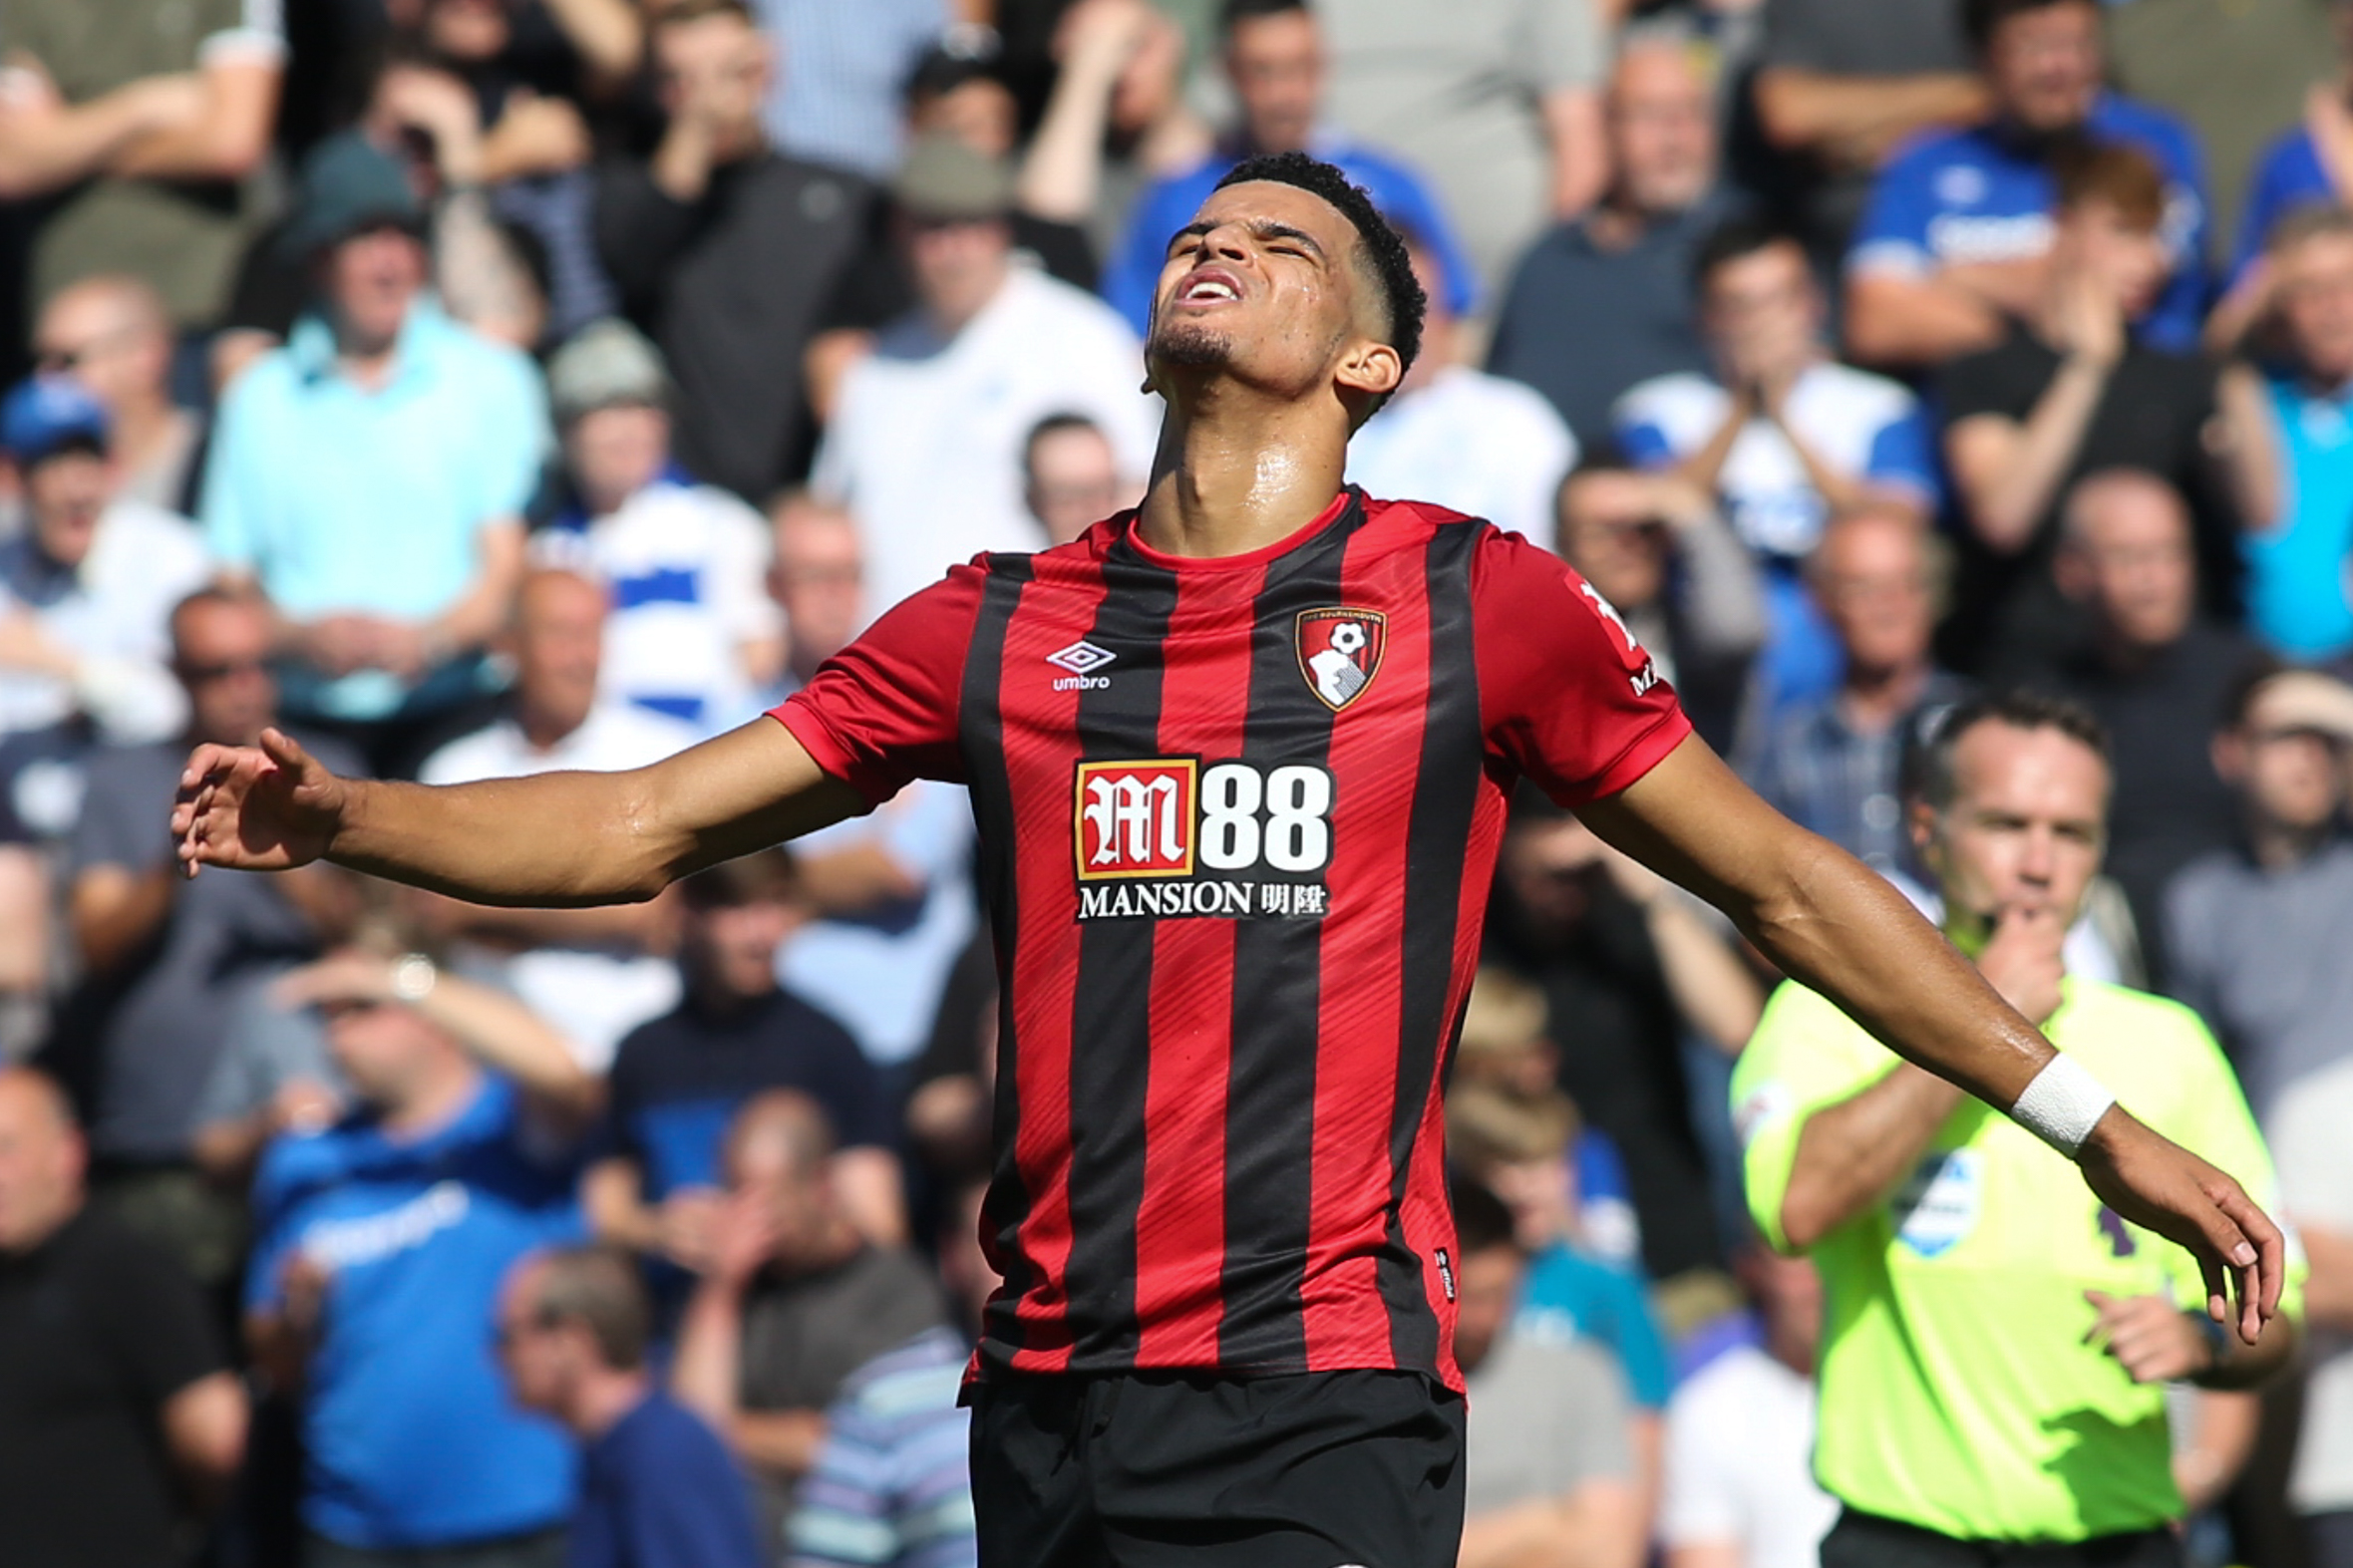 'I think we'll enjoy a lot from him this season' - Nathan Ake confident fellow Chelsea academy graduate Dominic Solanke will start scoring soon for Cherries